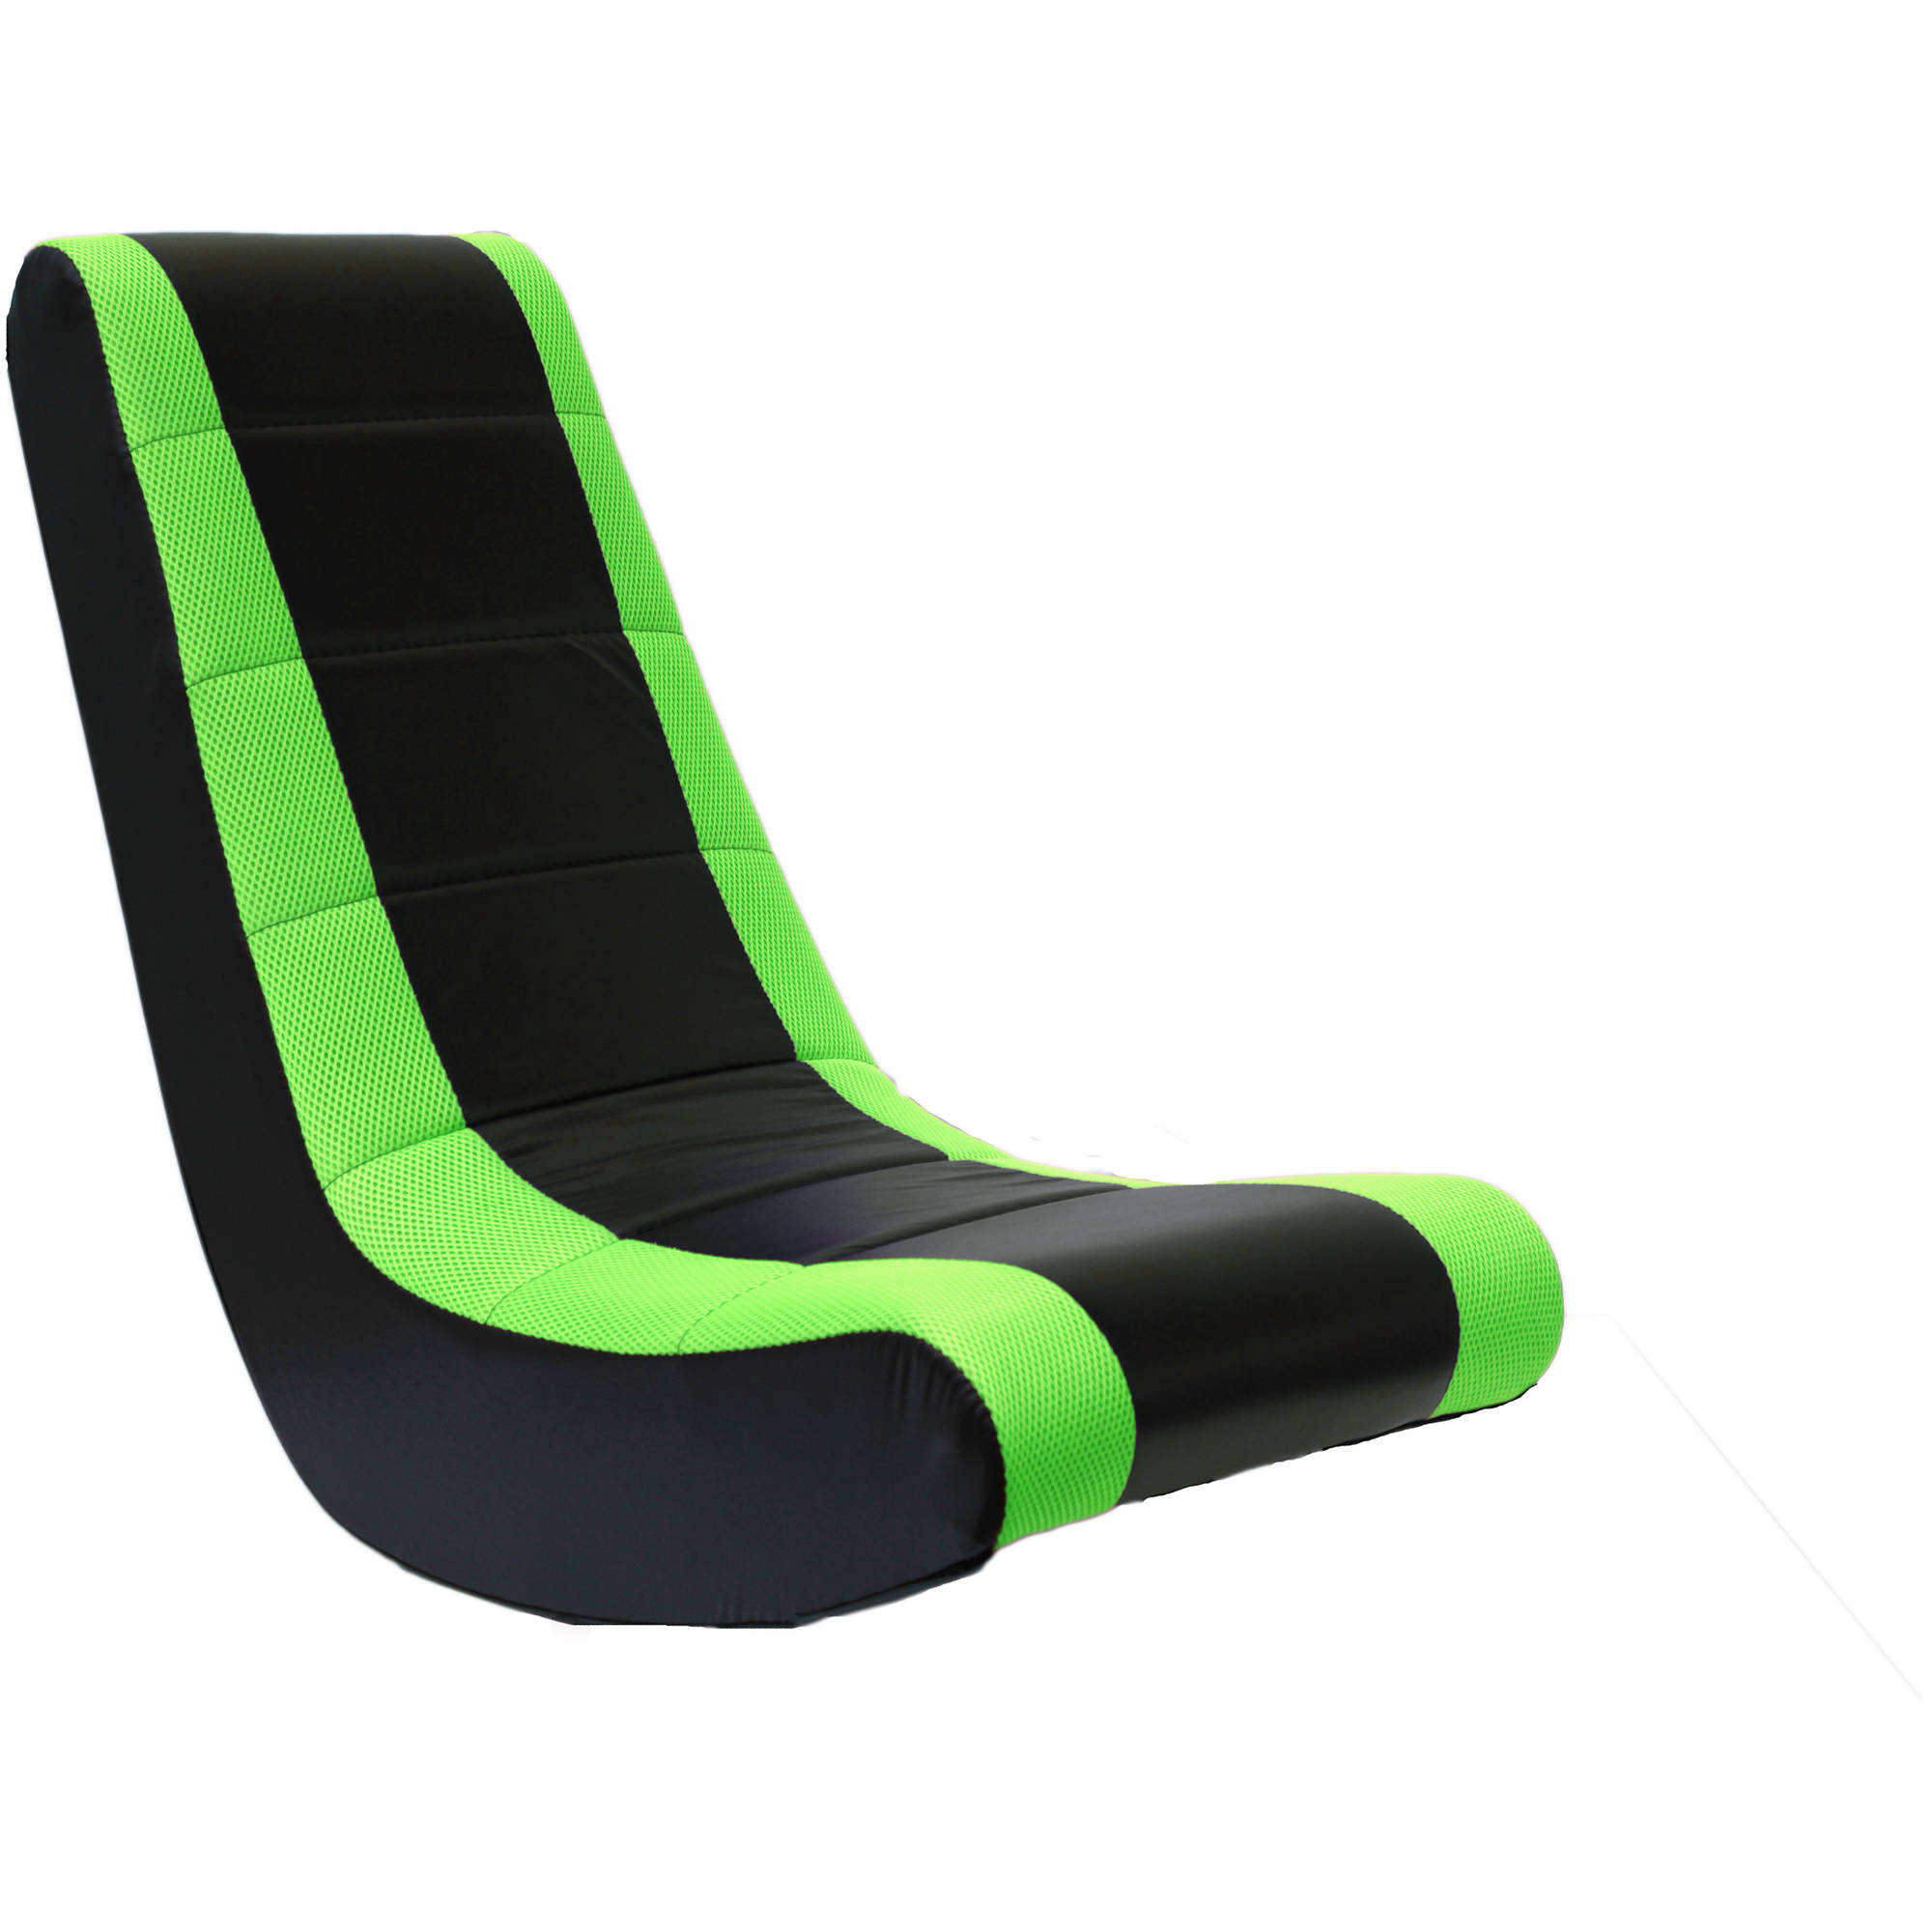 Crew Furniture Classic Video Rocker Gaming Chair Rocking Black